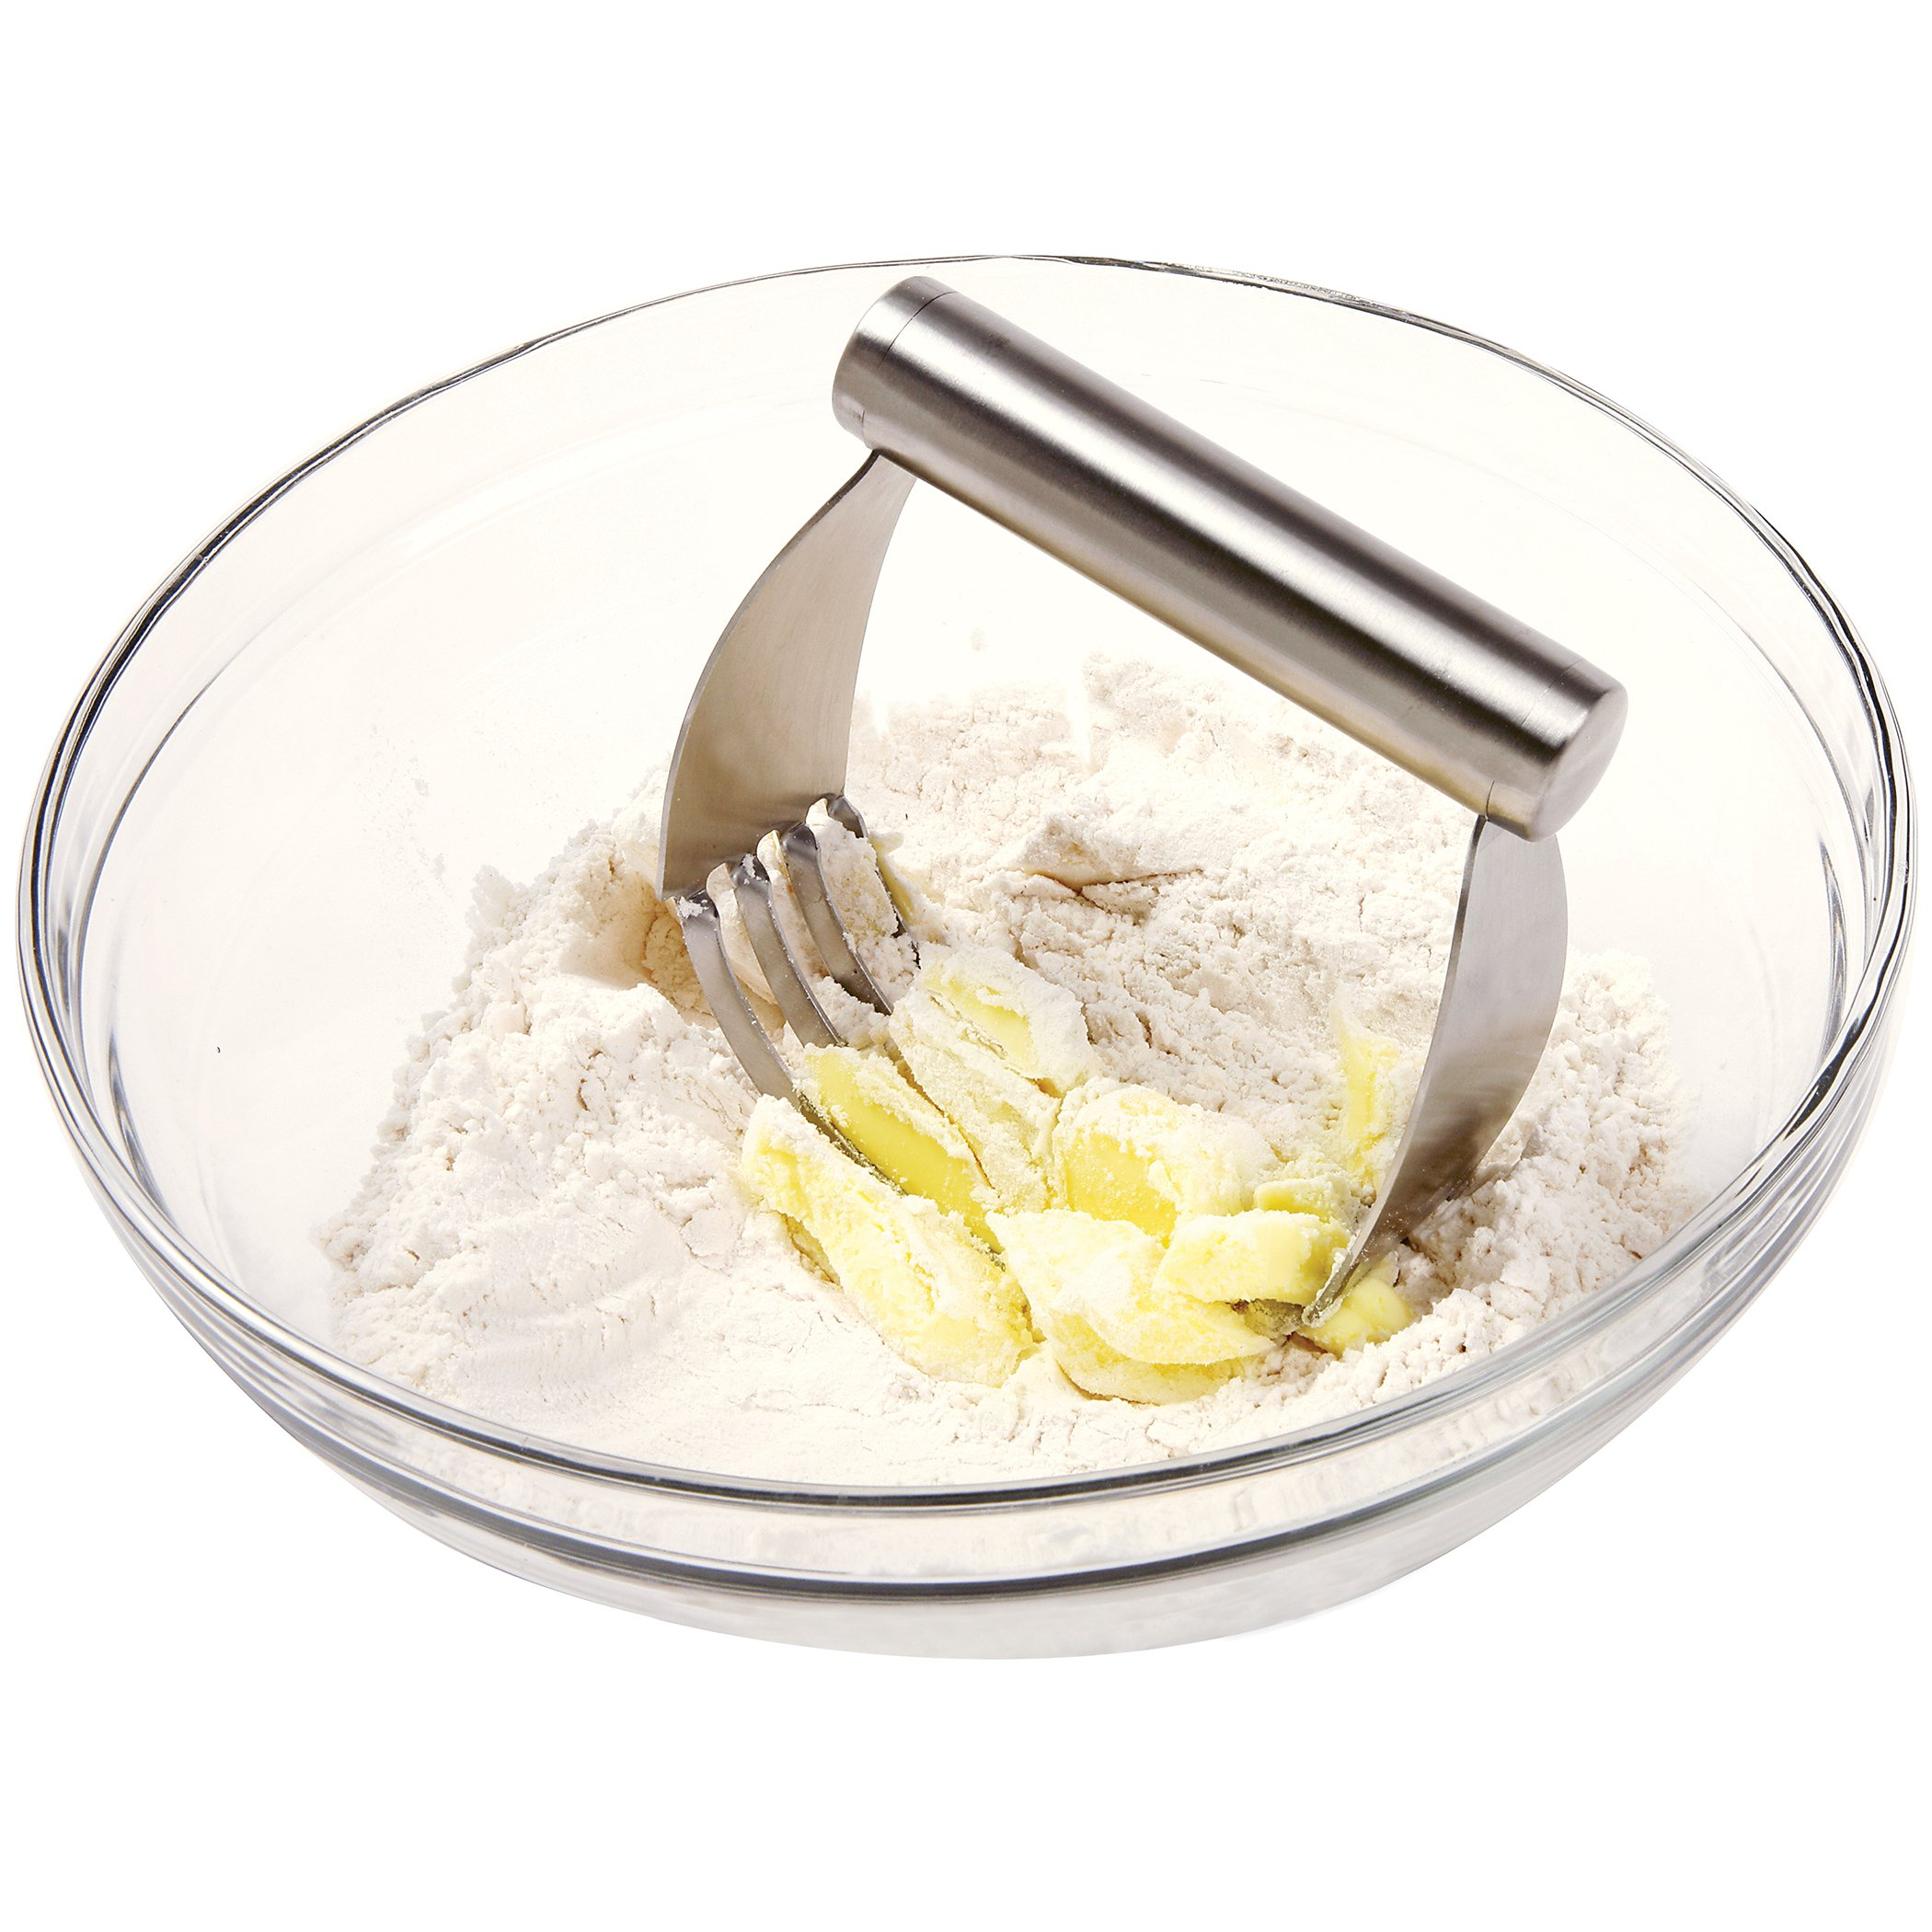 Norpro 3247 Deluxe Pastry Blender, Silver by Norpro